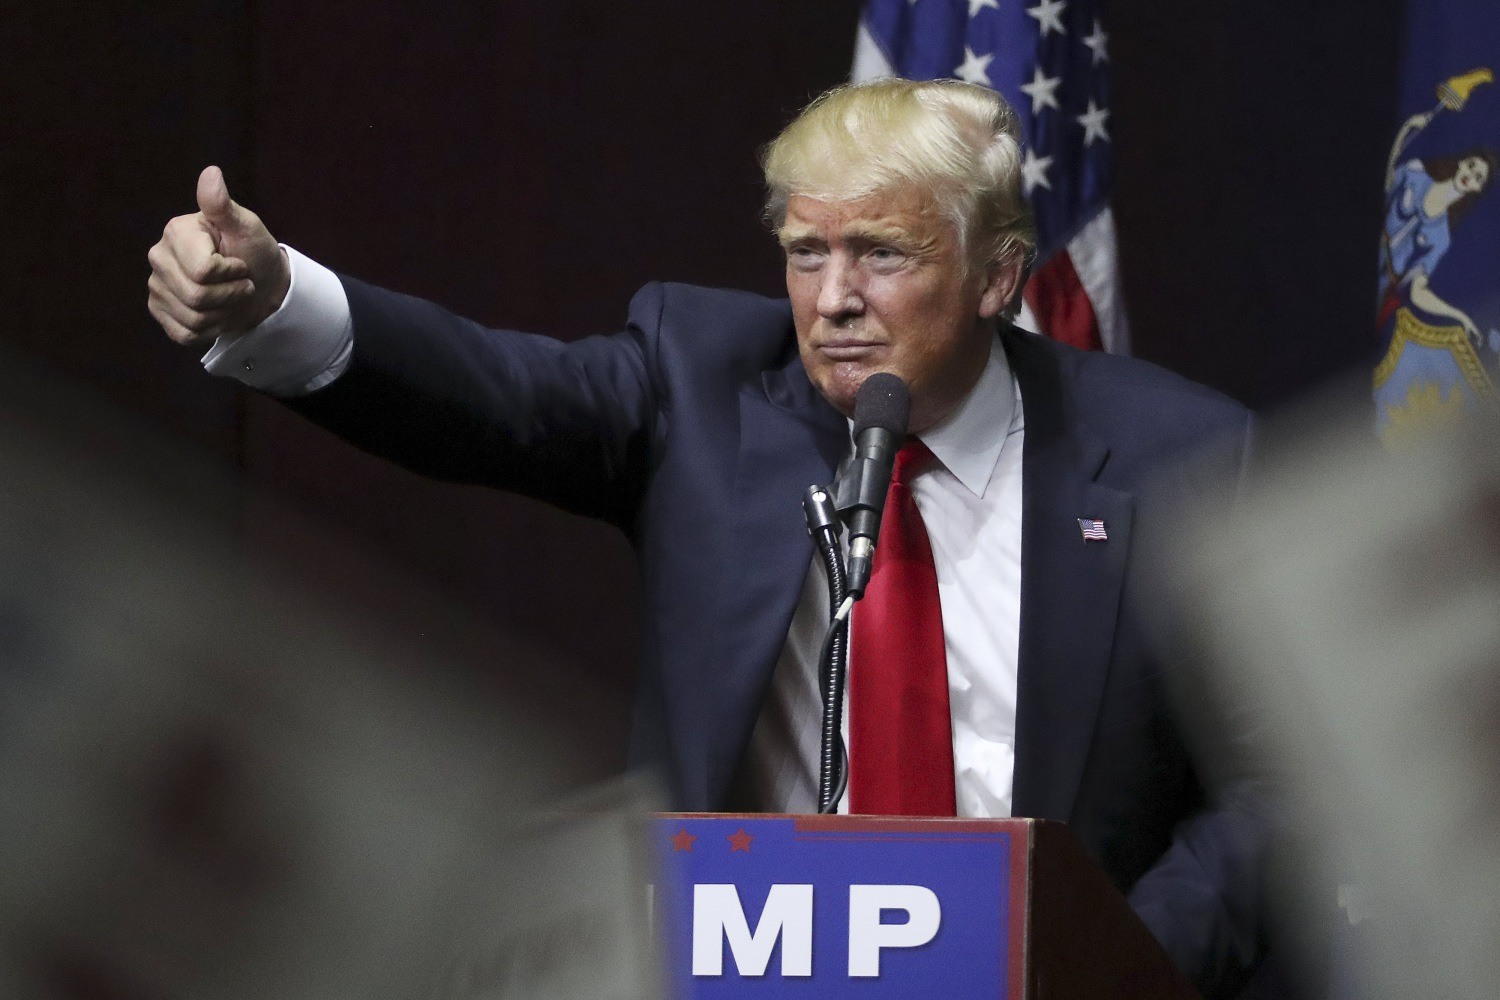 Image U S Republican Presidential Candidate Donald Trump Speaks On Stage During Campaign Event At Grumman